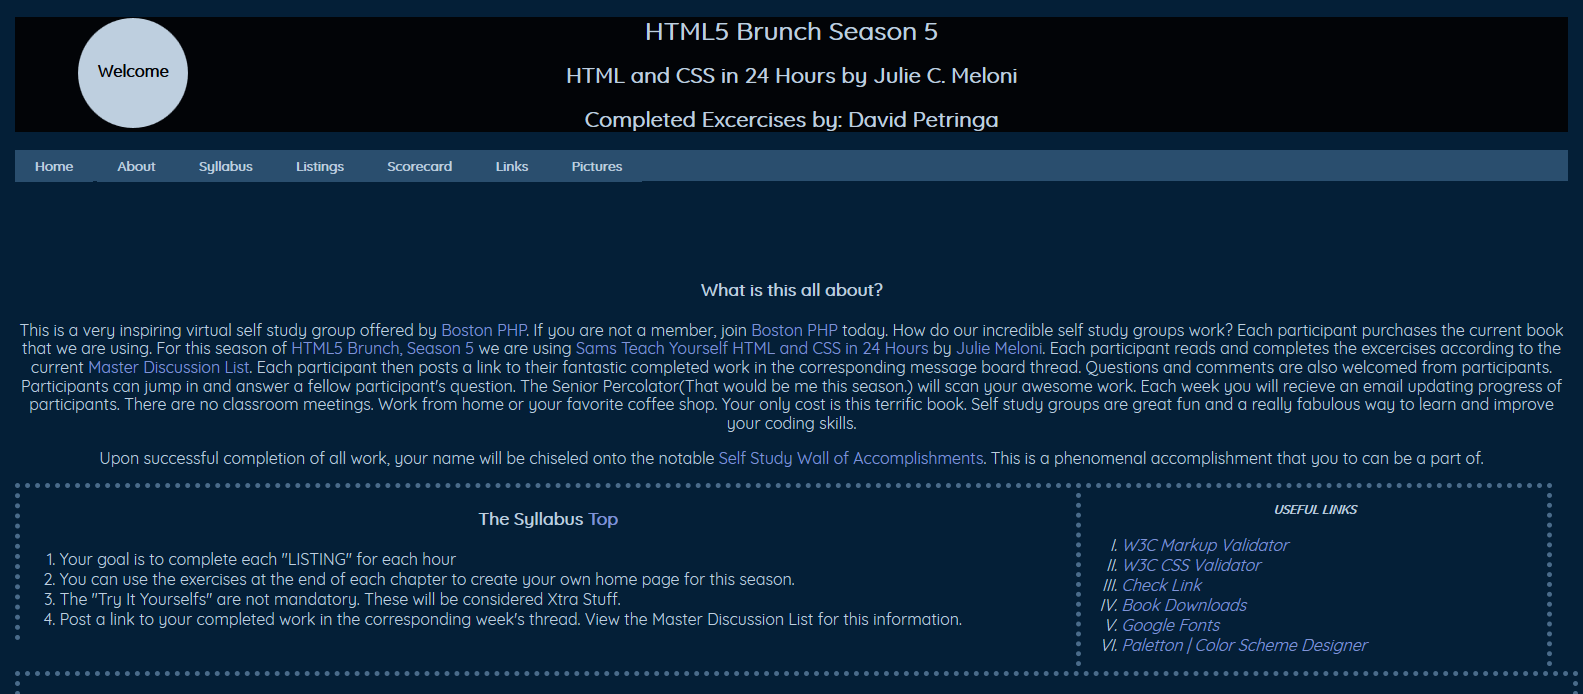 Home Page For HTML5 Brunch Season 5